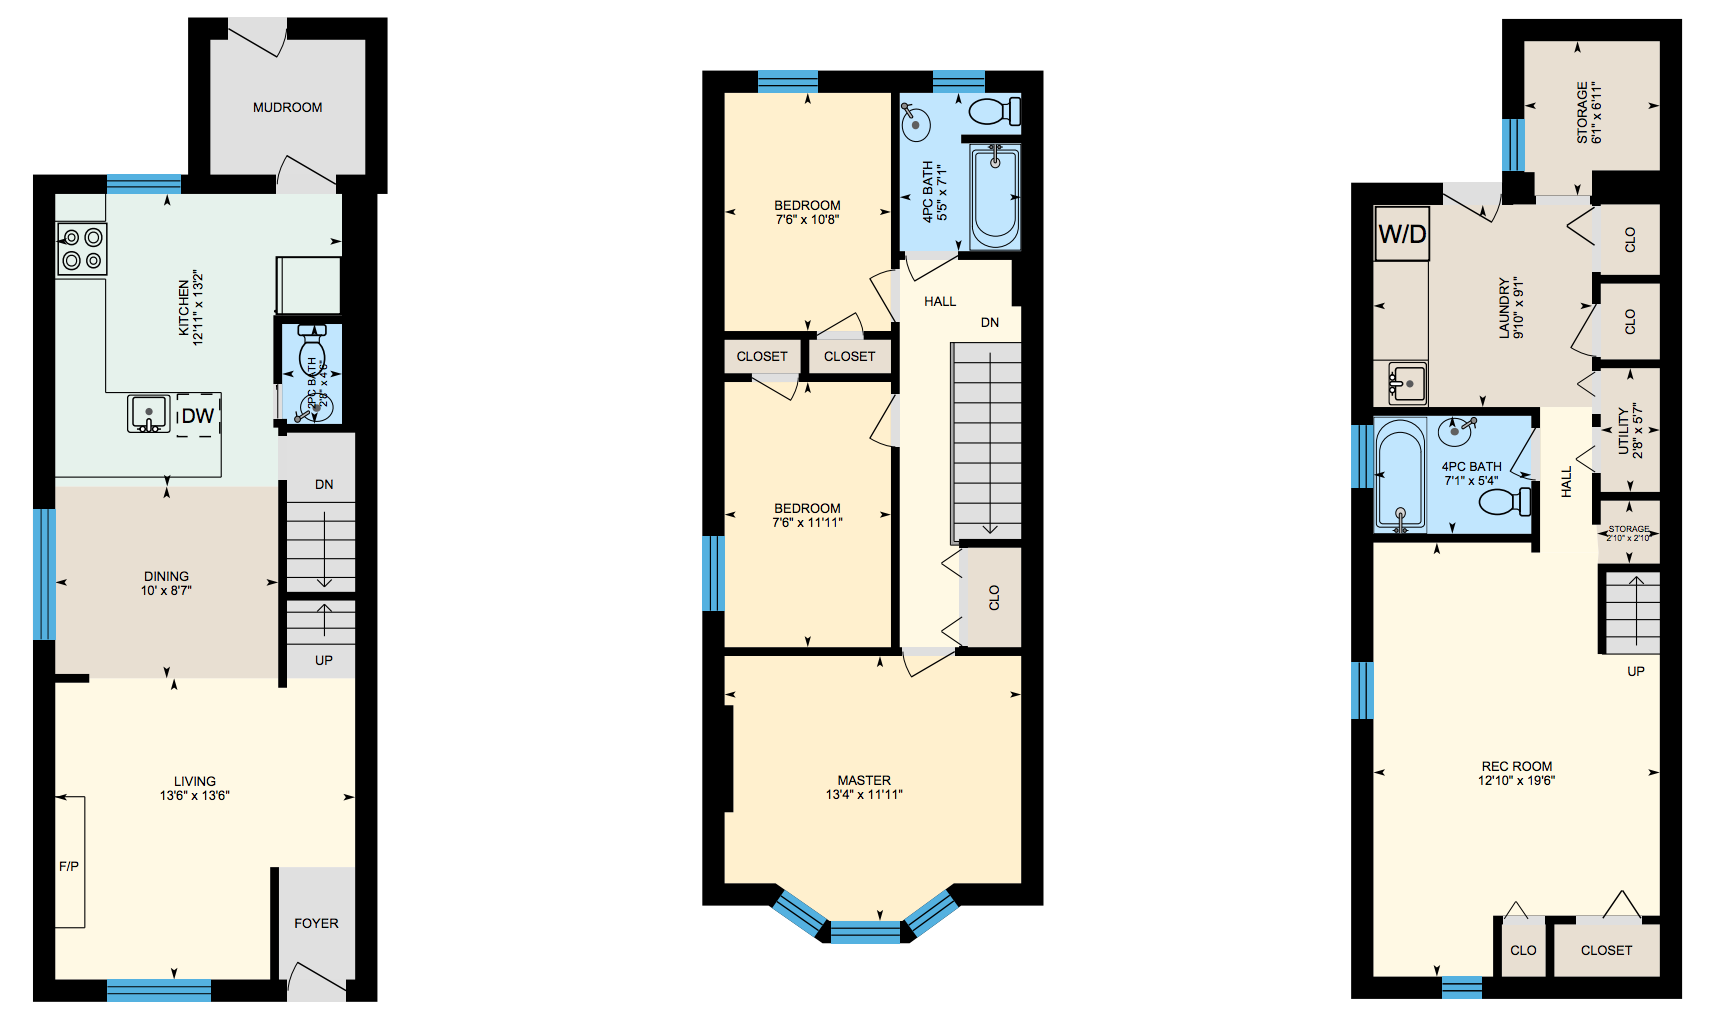 32 Benson Ave floor plan.png